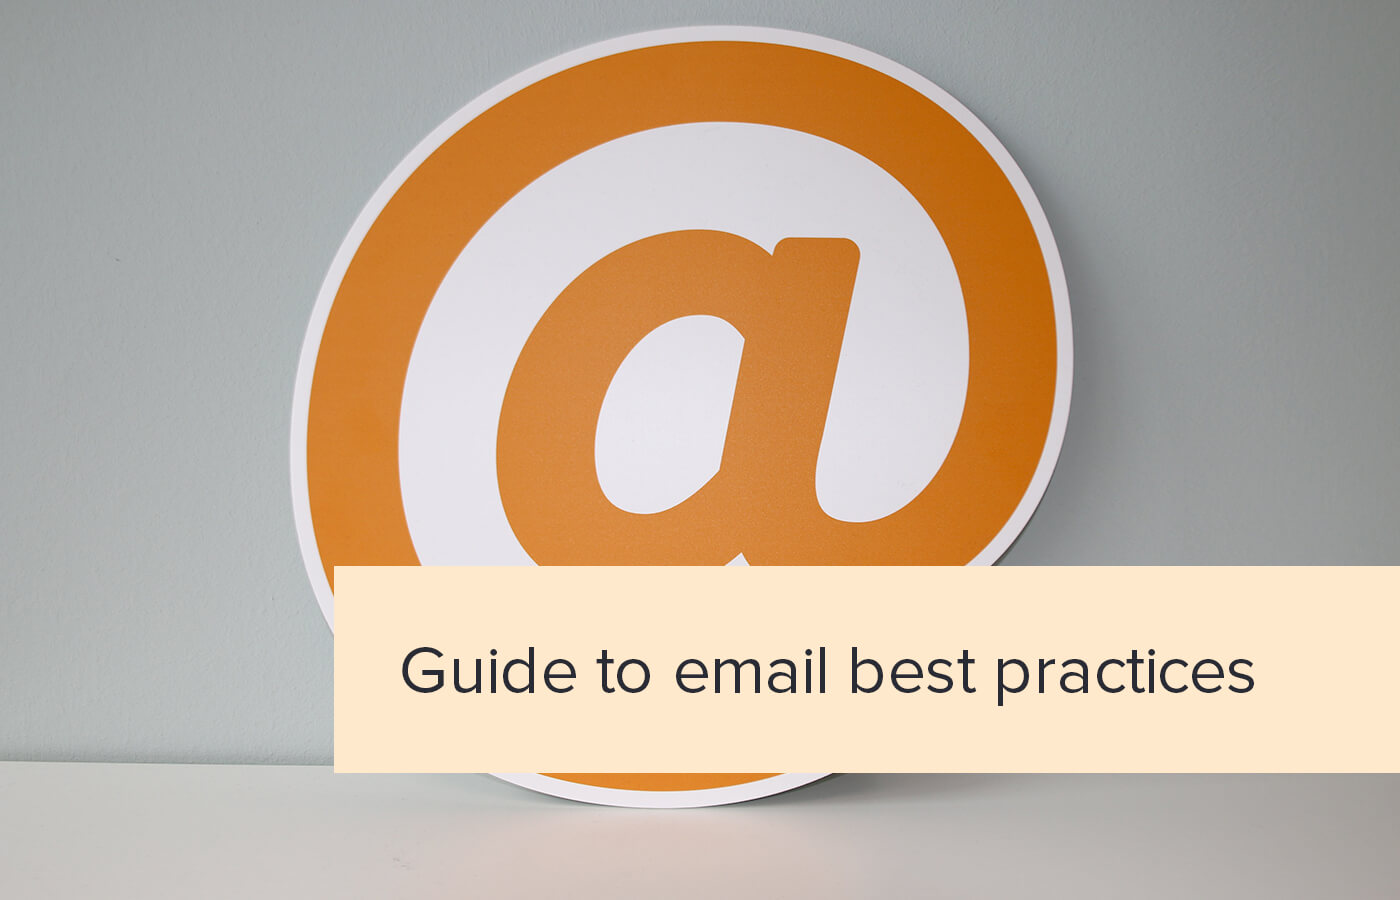 Guide to email best practices